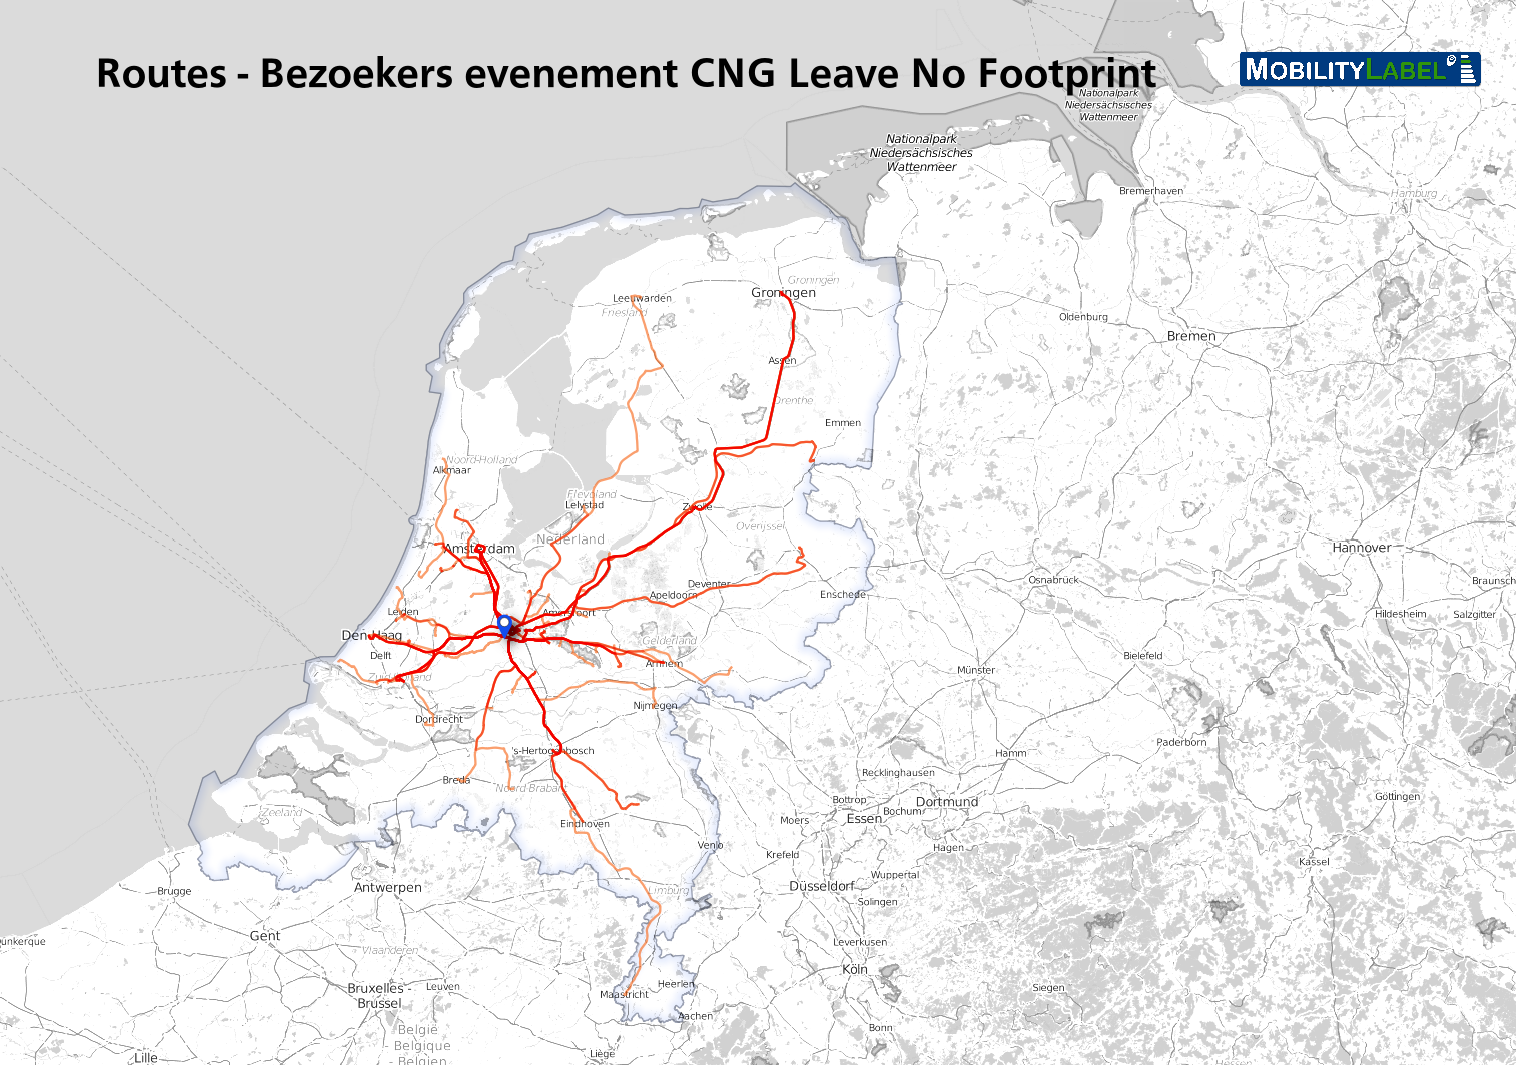 CNG Leave No Footprint